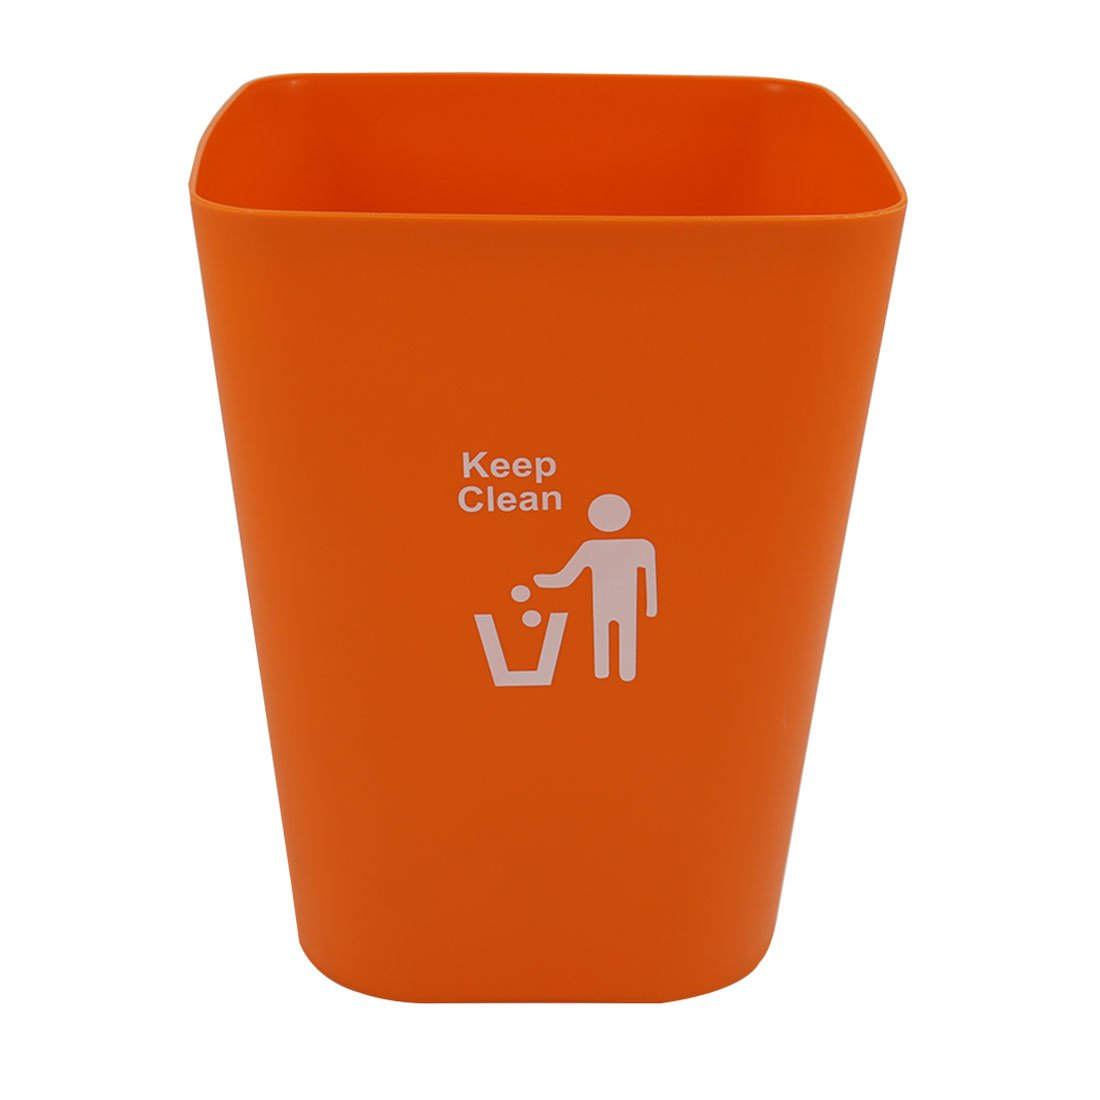 Garbage Cans, Petforu In-Home Recycling Bins Wastebaskets Kitchen Office Waste Bins without Lid - Orange